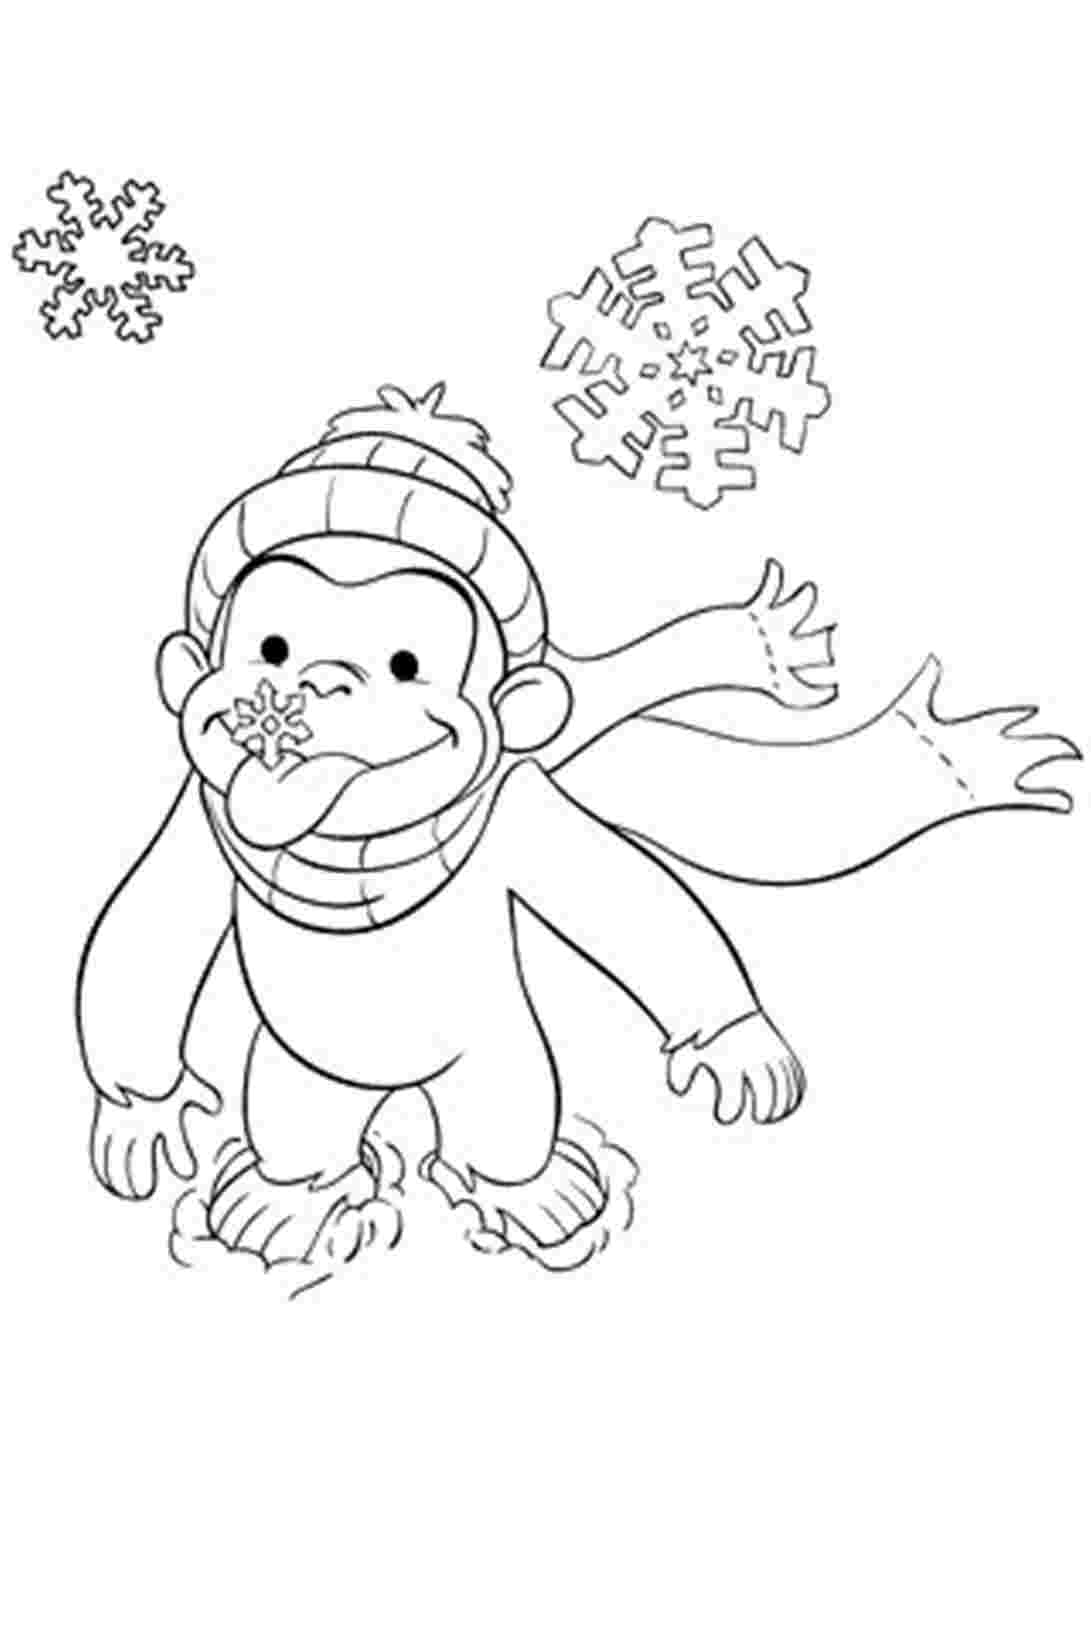 free printable curious george coloring pages curious george coloring page free curious george pages curious george printable coloring free